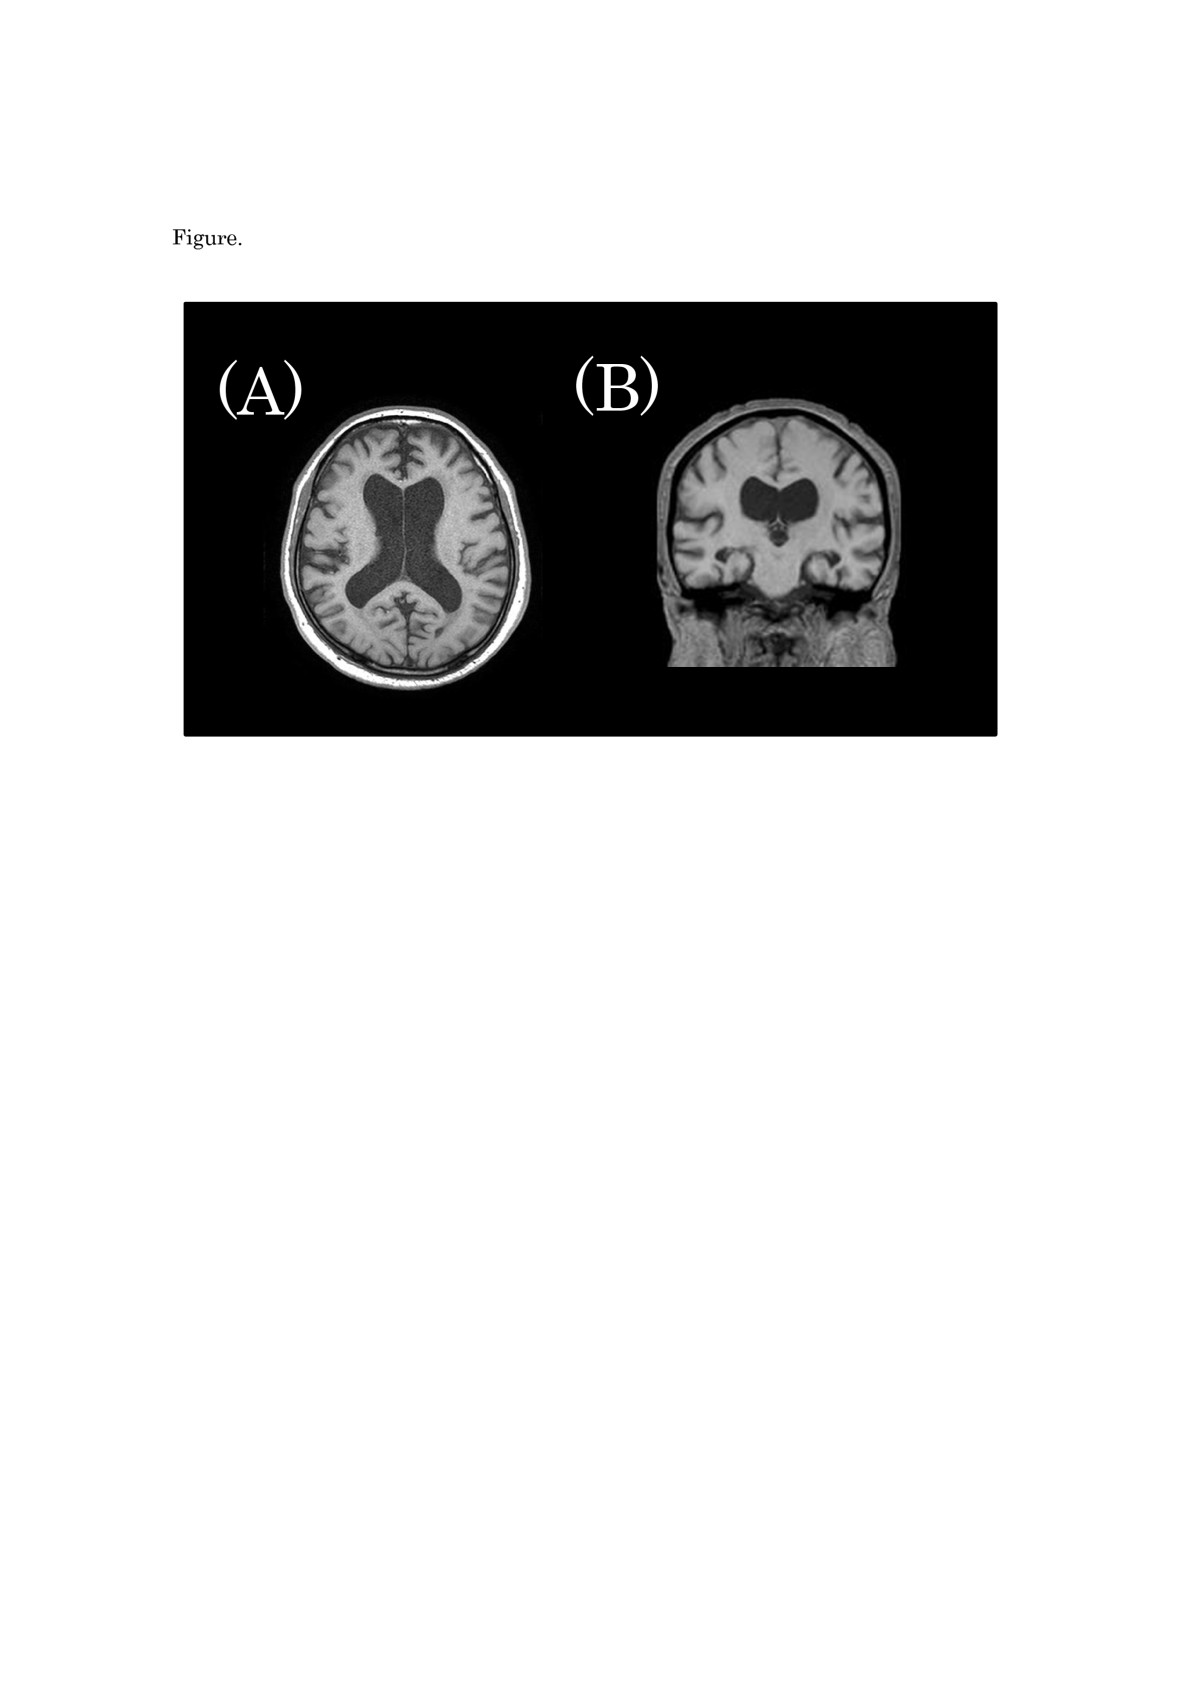 https://static-content.springer.com/image/art%3A10.1186%2F1752-1947-7-94/MediaObjects/13256_2012_Article_2491_Fig1_HTML.jpg